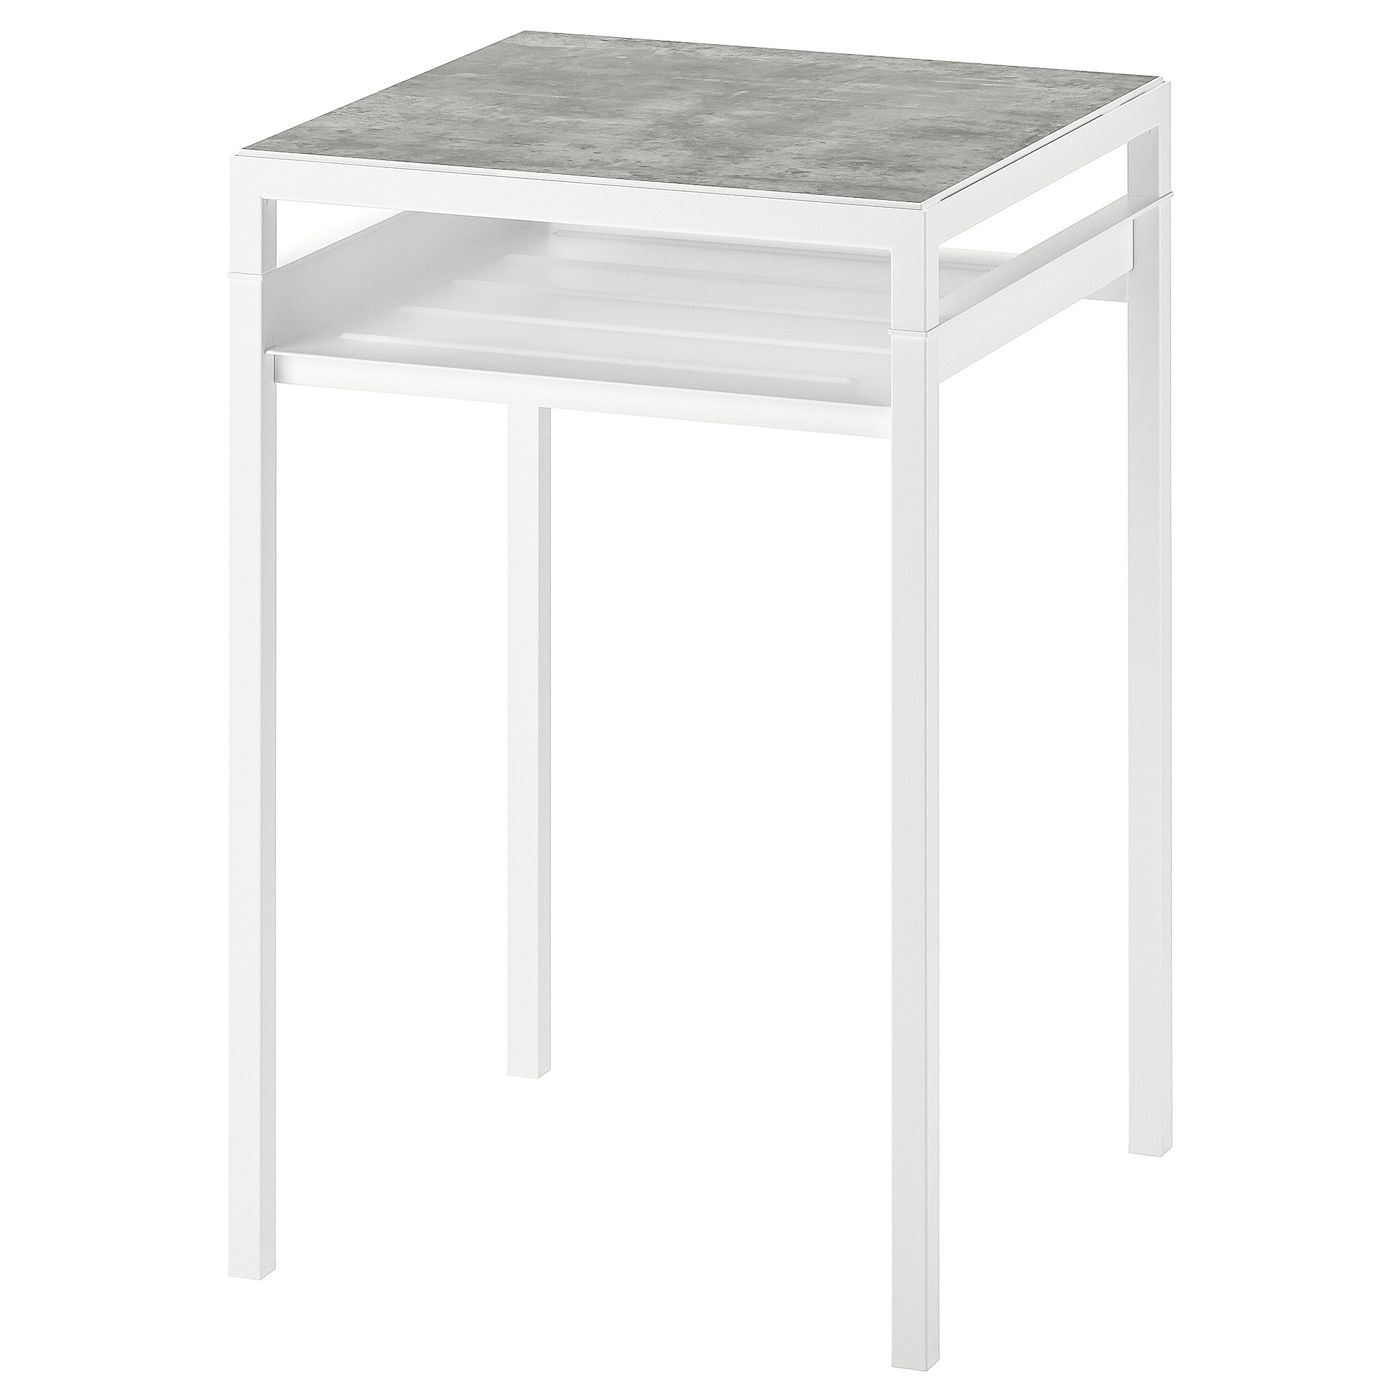 Nyboda Beistelltisch Wendbare Platte Hellgrau Betonmuster Weiss Ikea Osterreich In 2020 Table Top Lighting Side Table Table Top